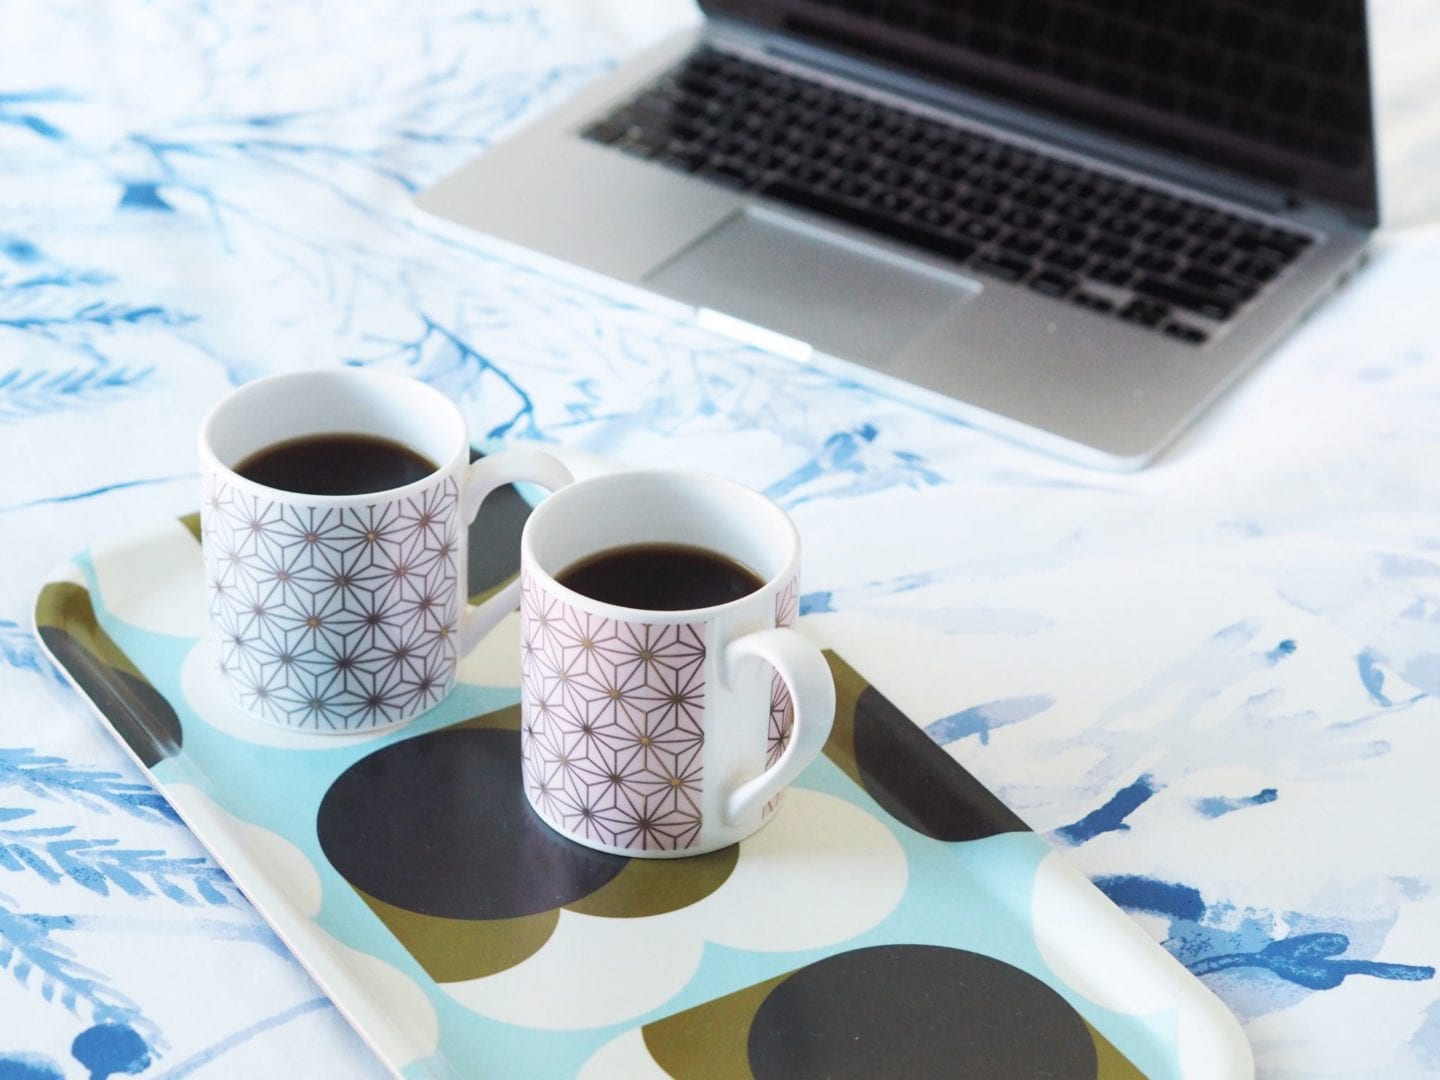 orla-kiely-tray-on-bed-with-coffee